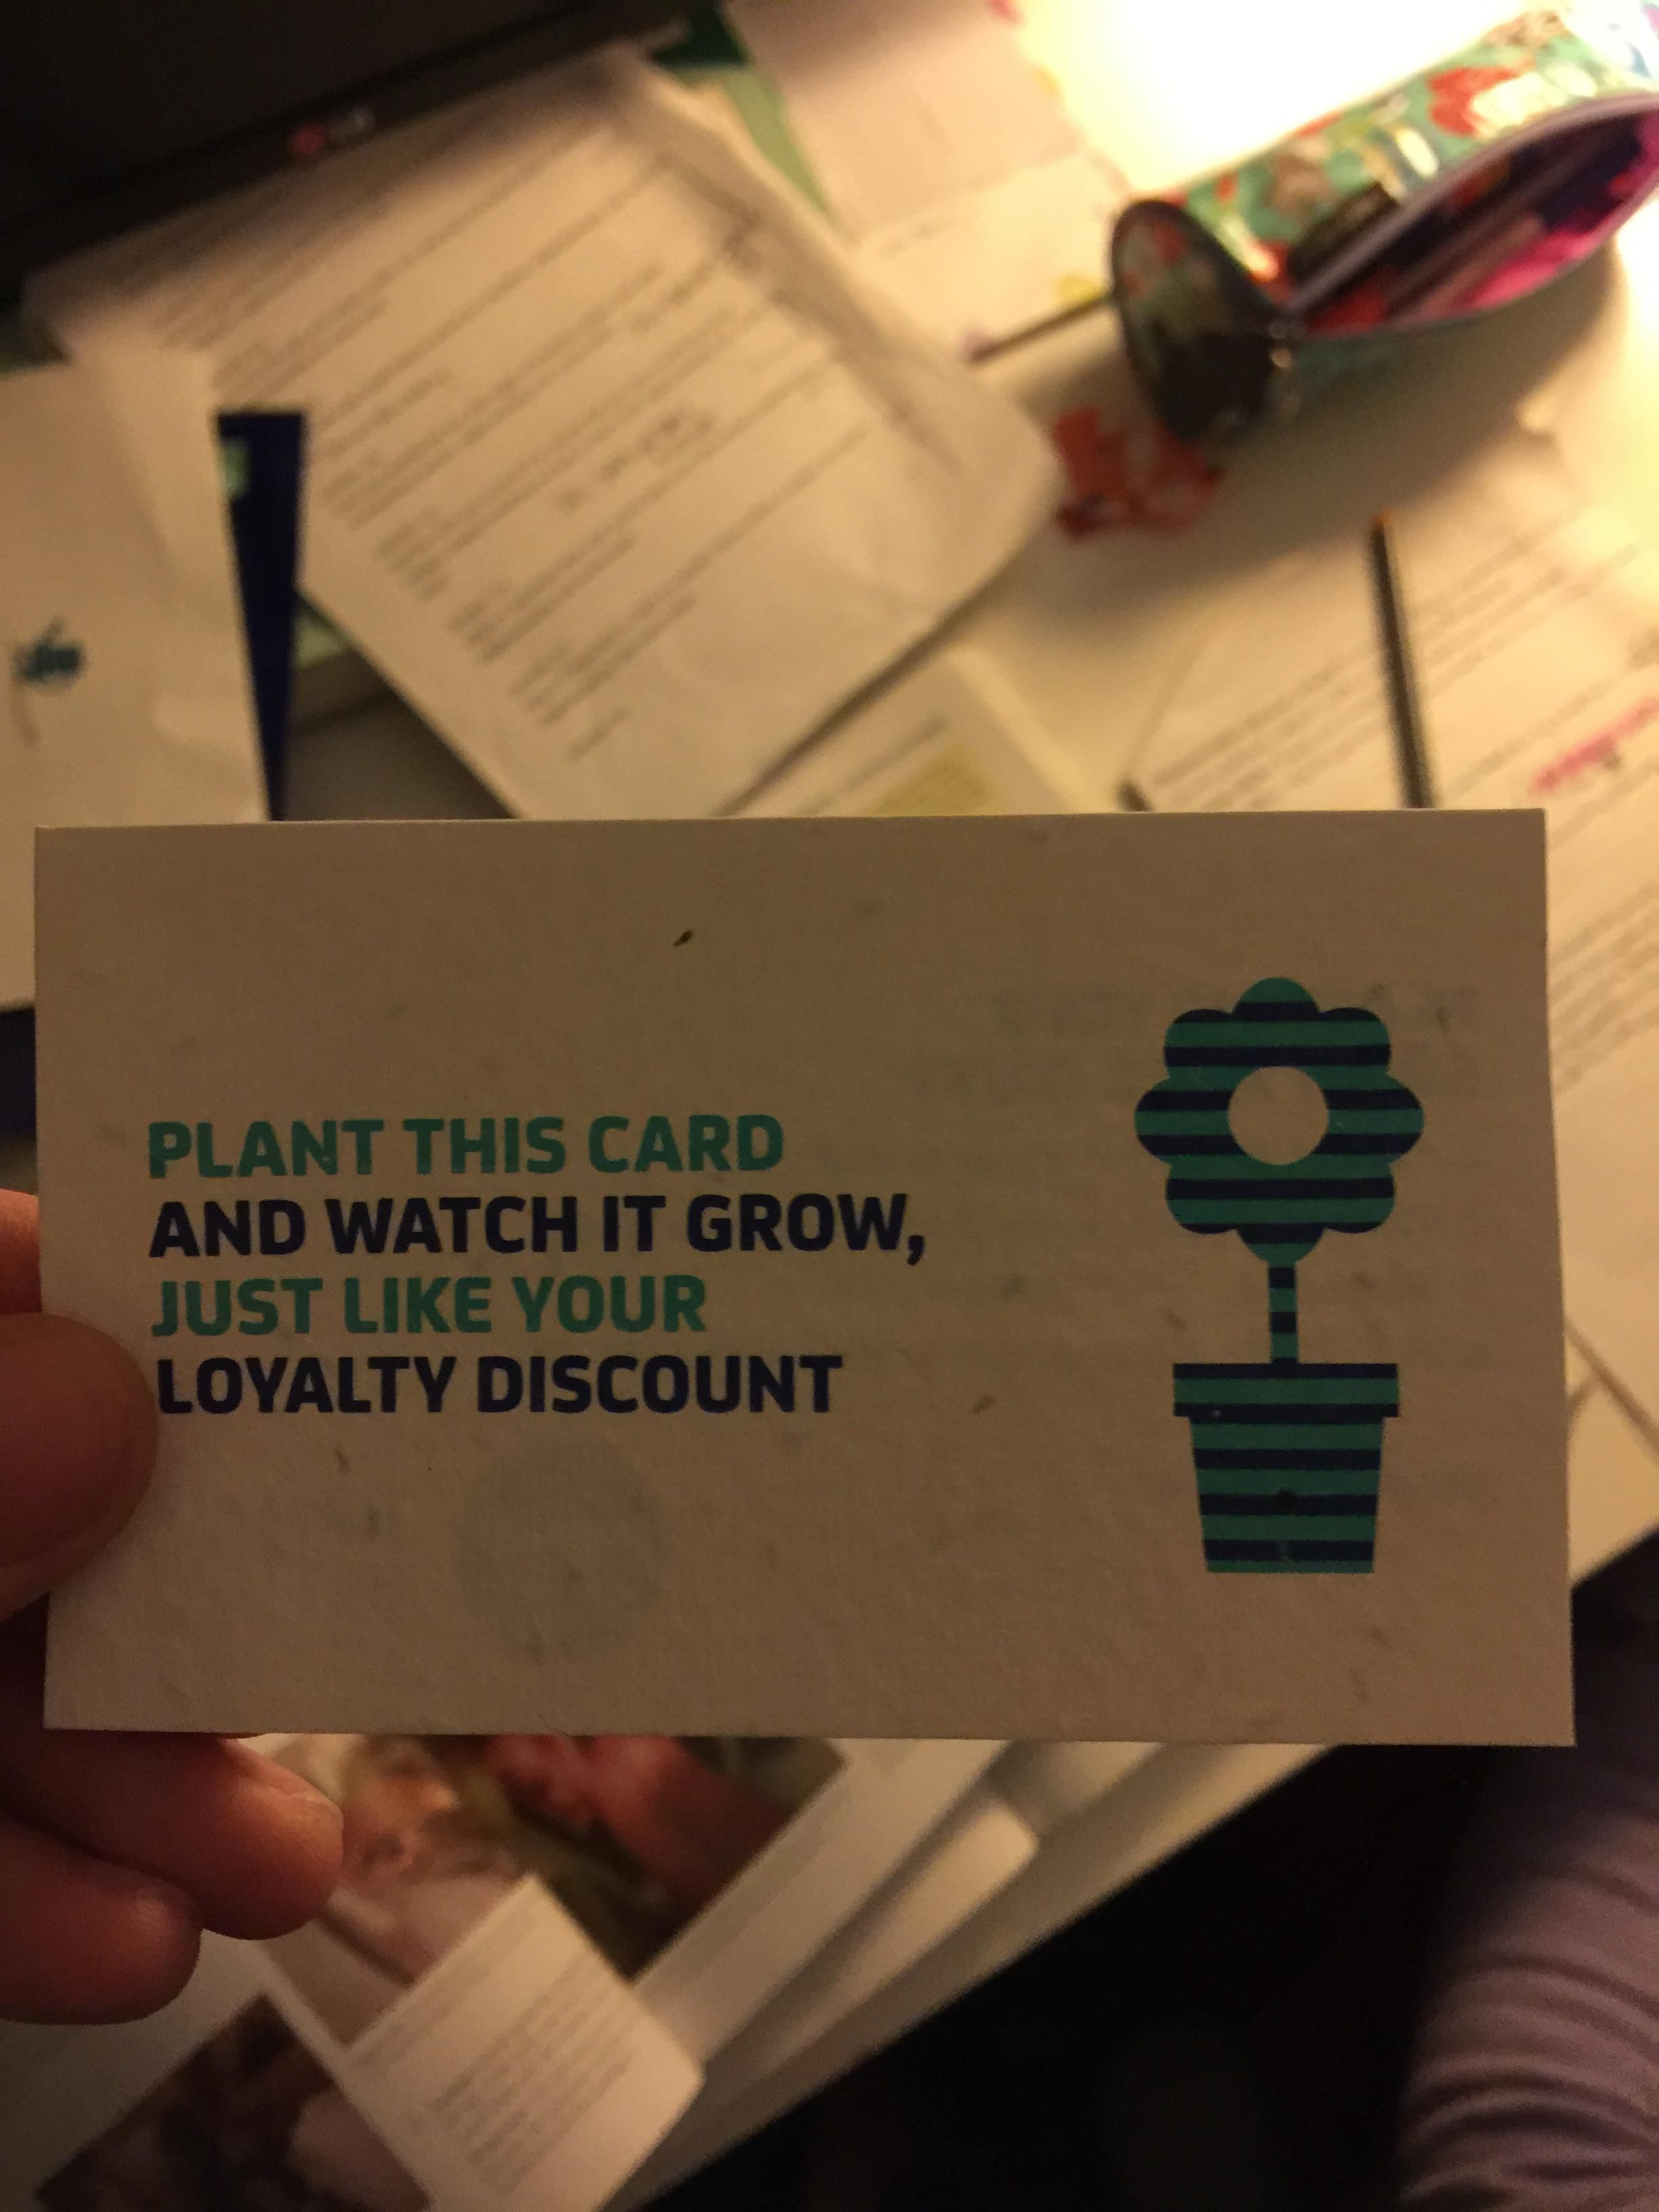 A plant was delivered in an envelope today - Imgur